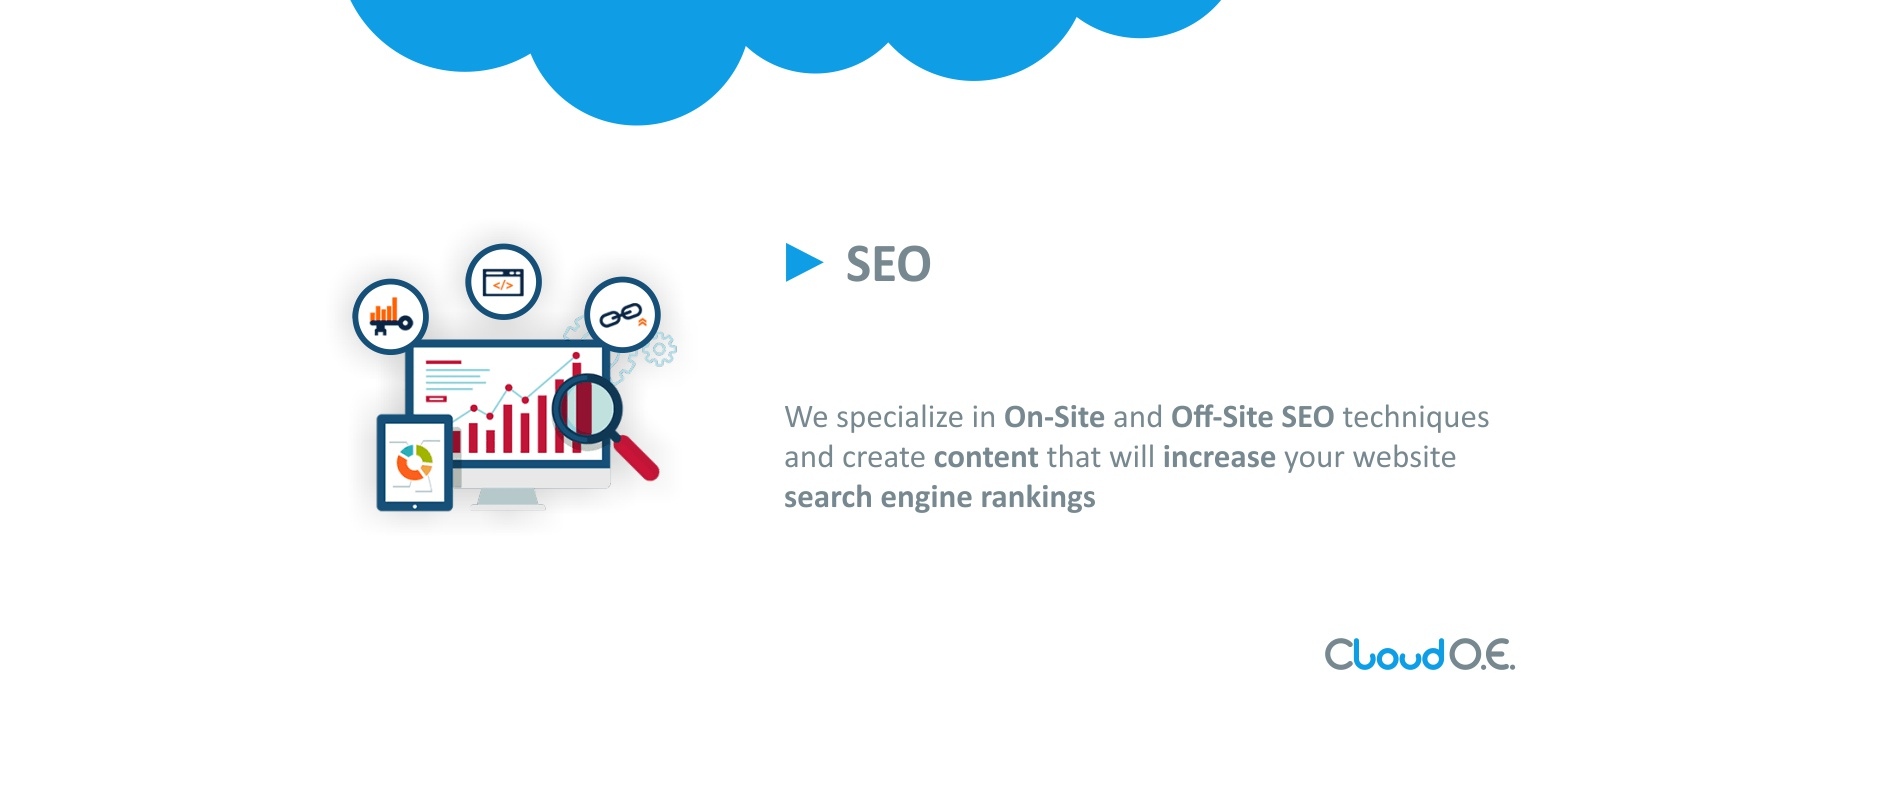 SEO - Search Engine Optimization En